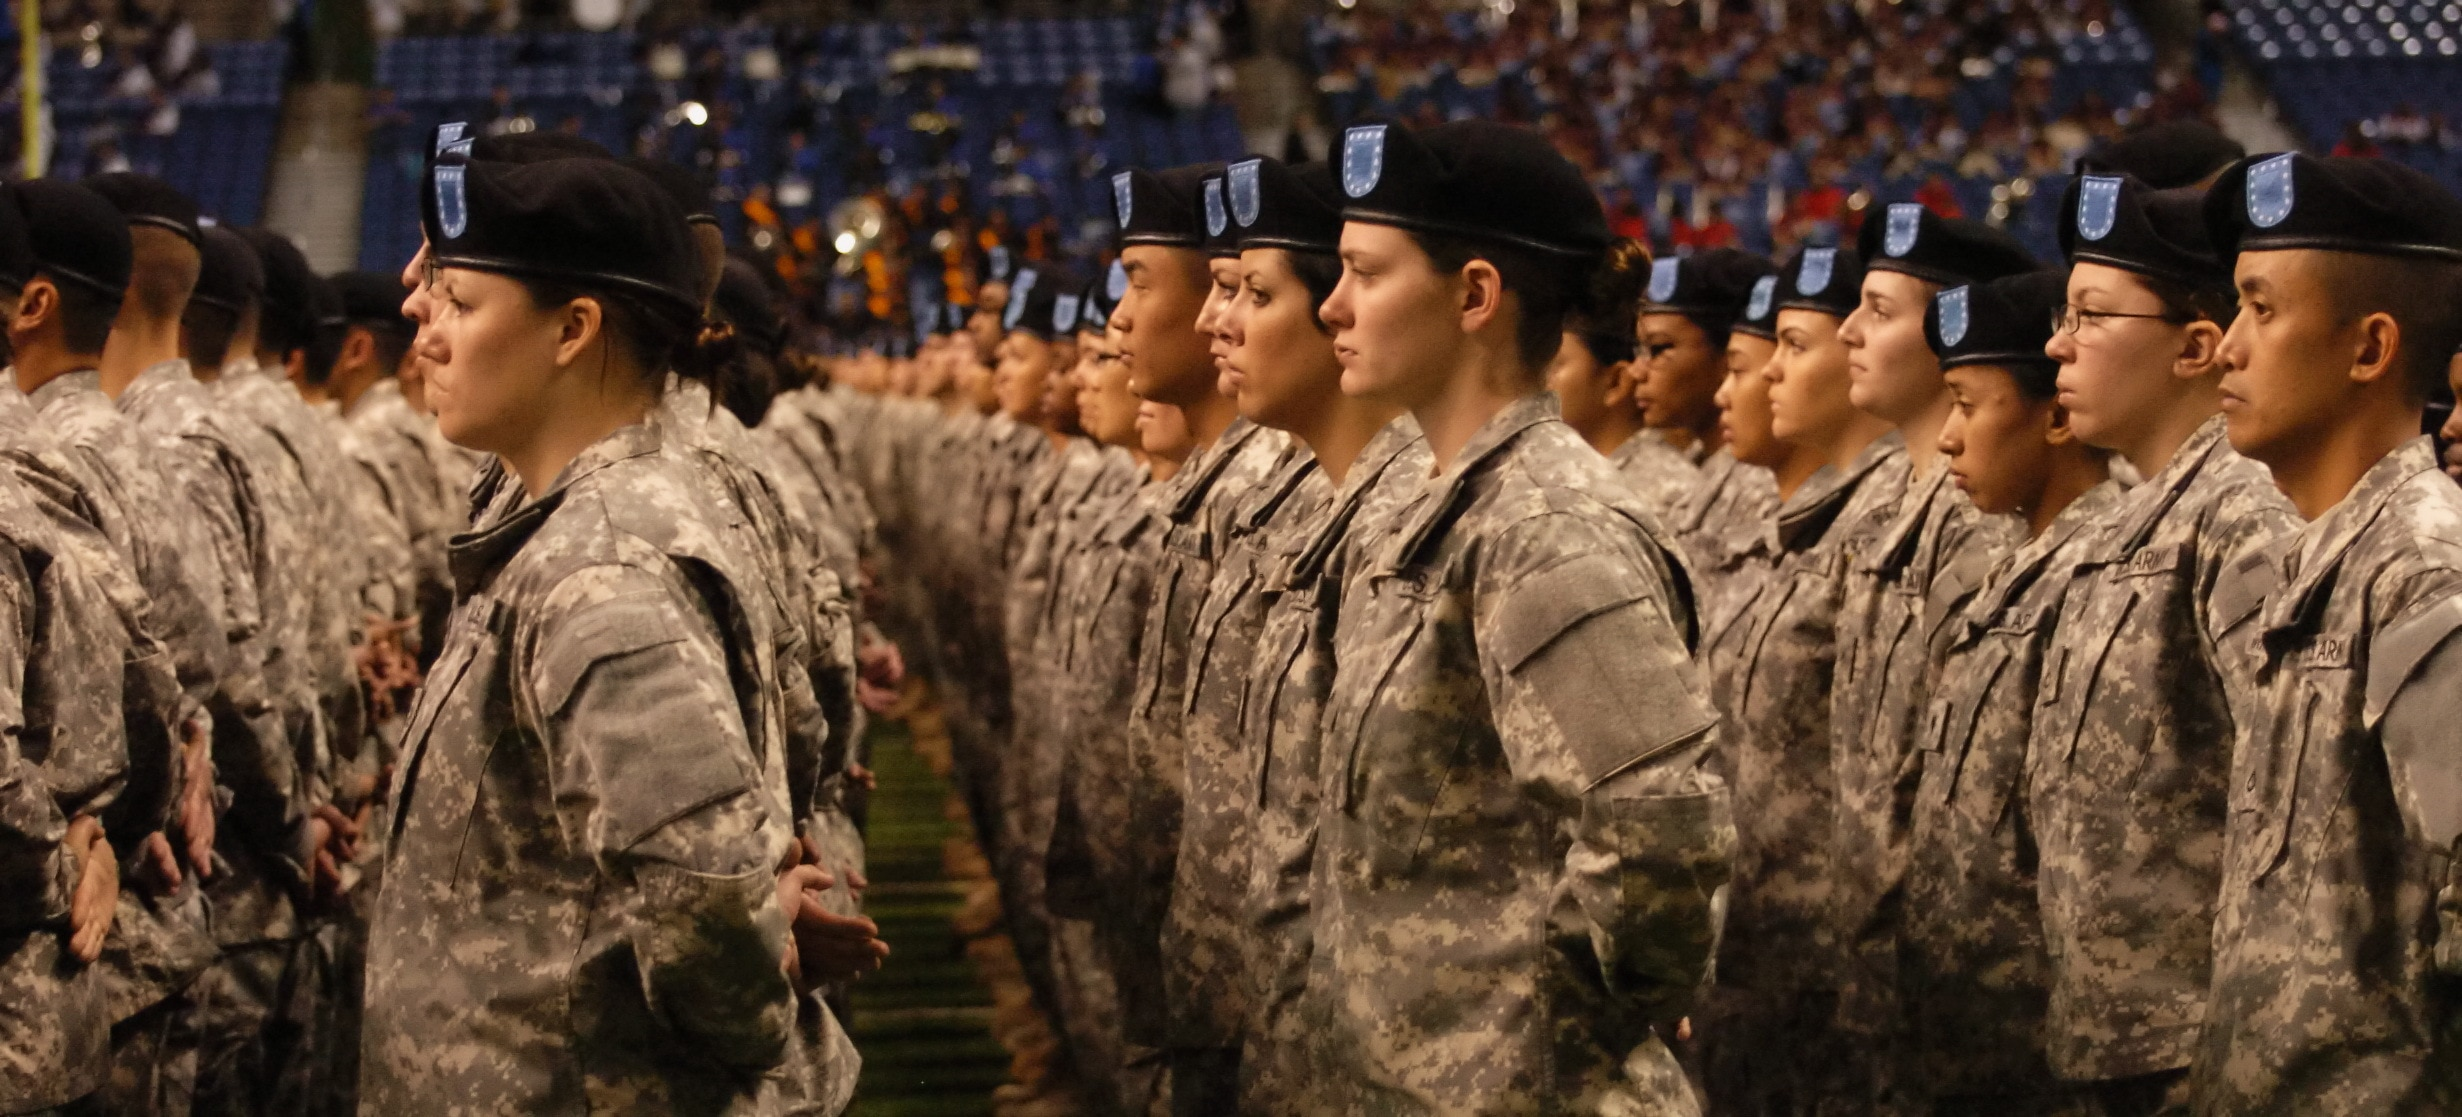 New U.S. soldiers take the oath of enlistment